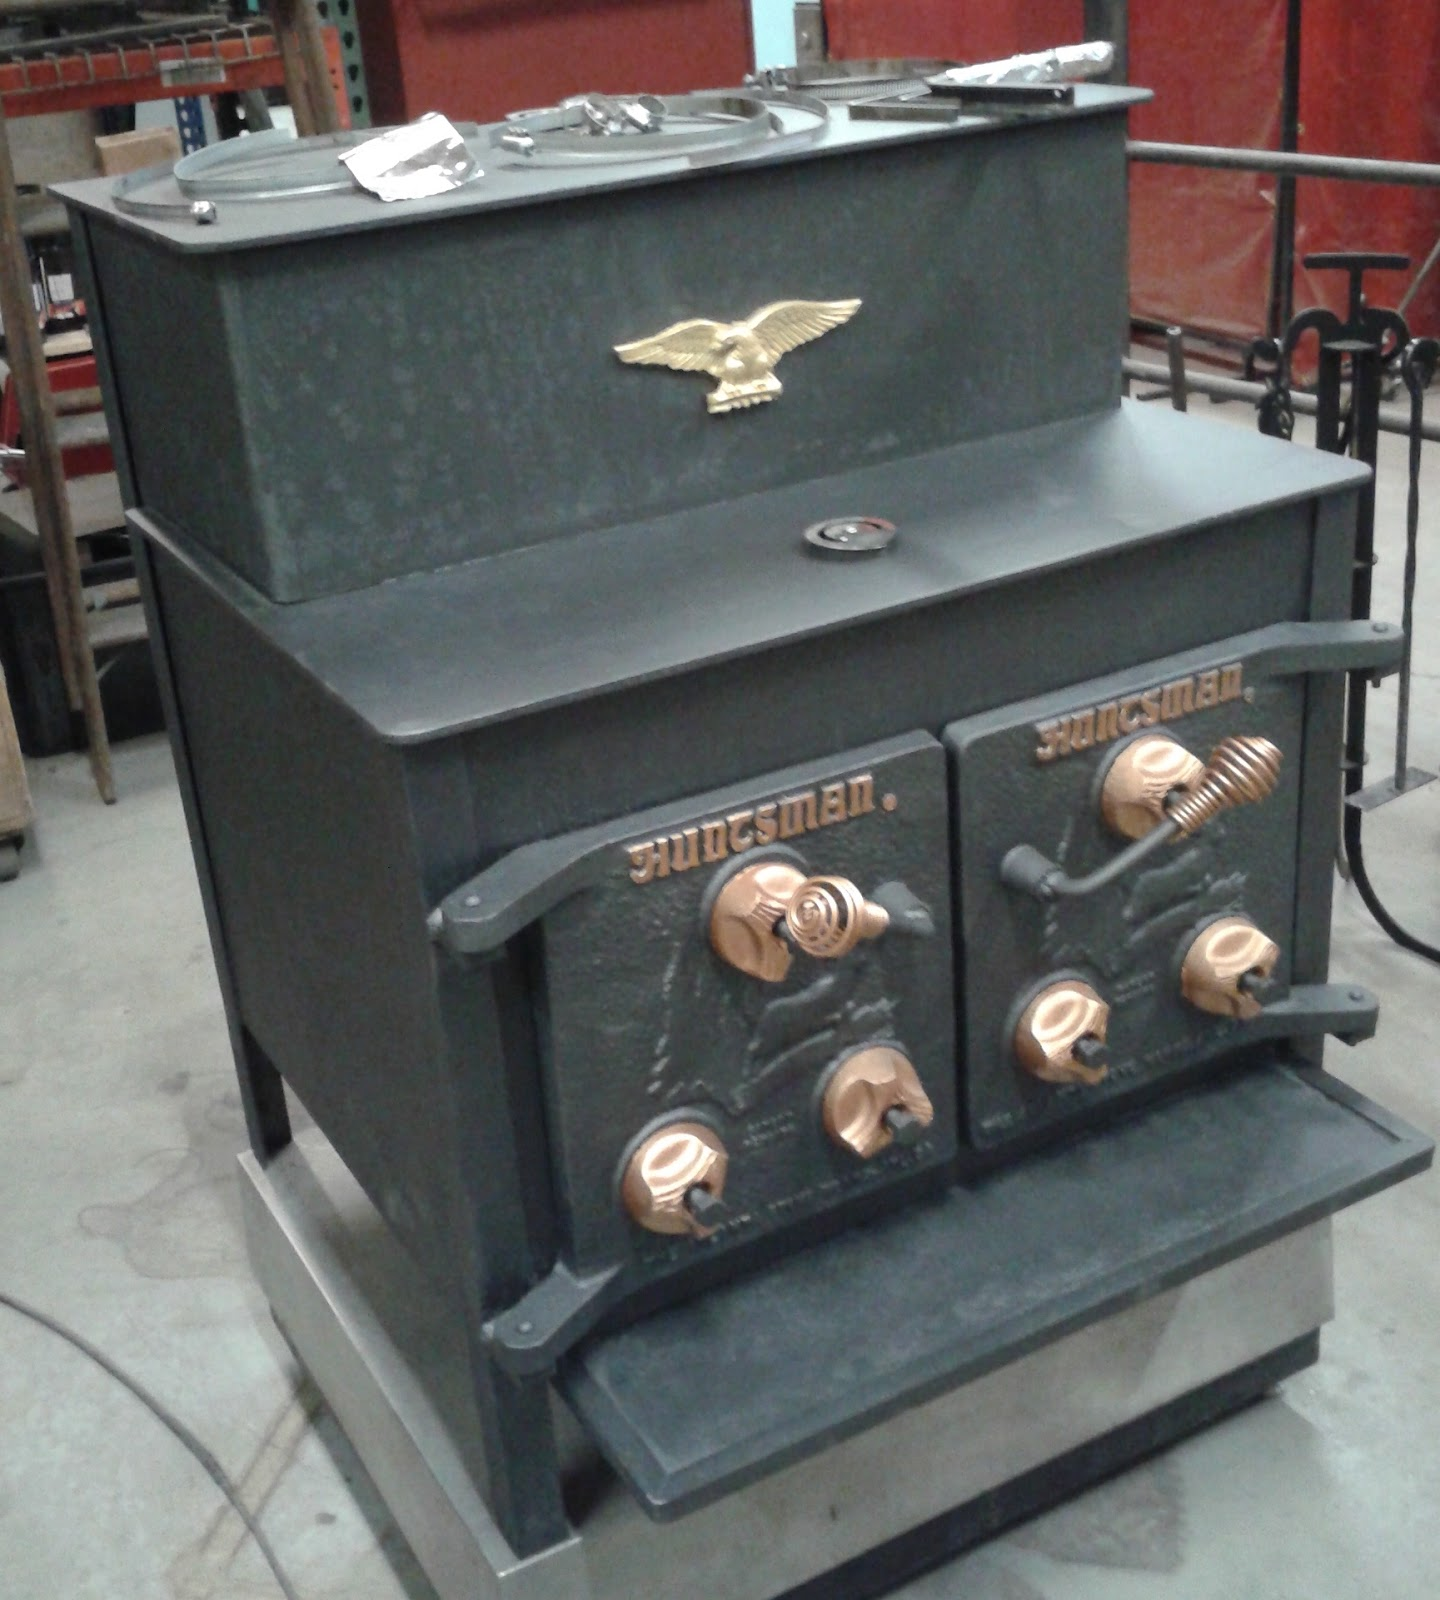 Huntsman Stove - After the makeover - Woodstock Soapstone Co. Blog: R2Z Detour: Introducing Our First